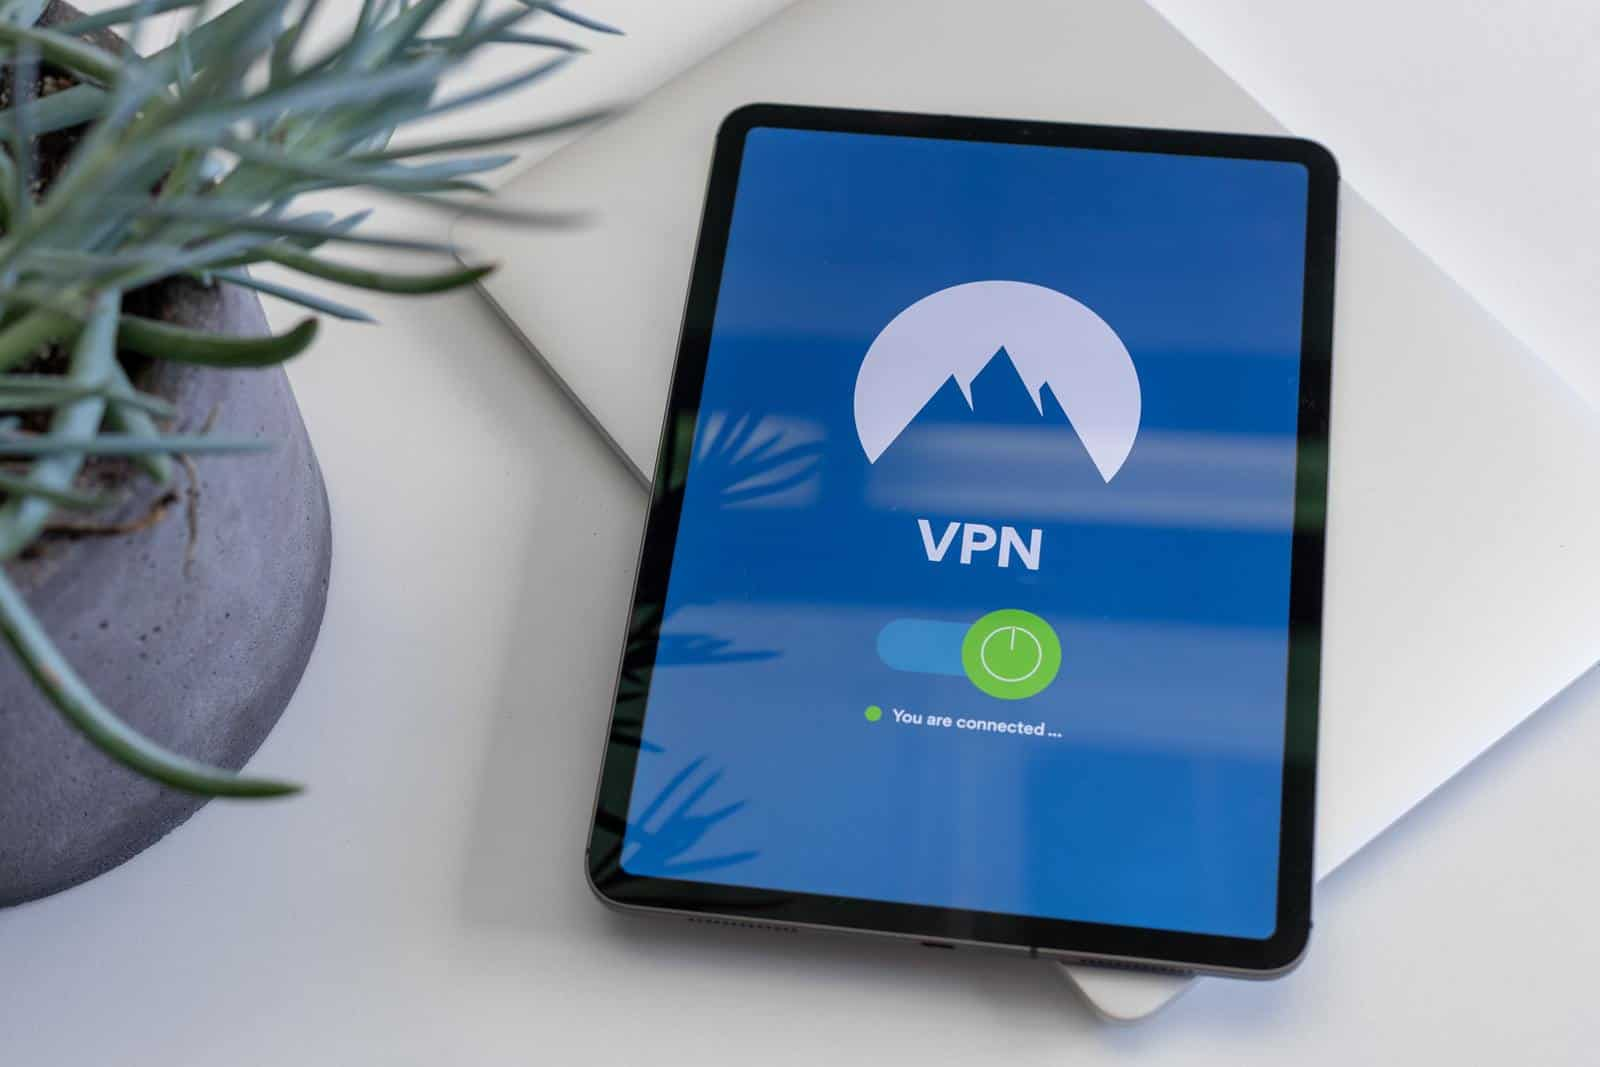 Tablet connected to VPN